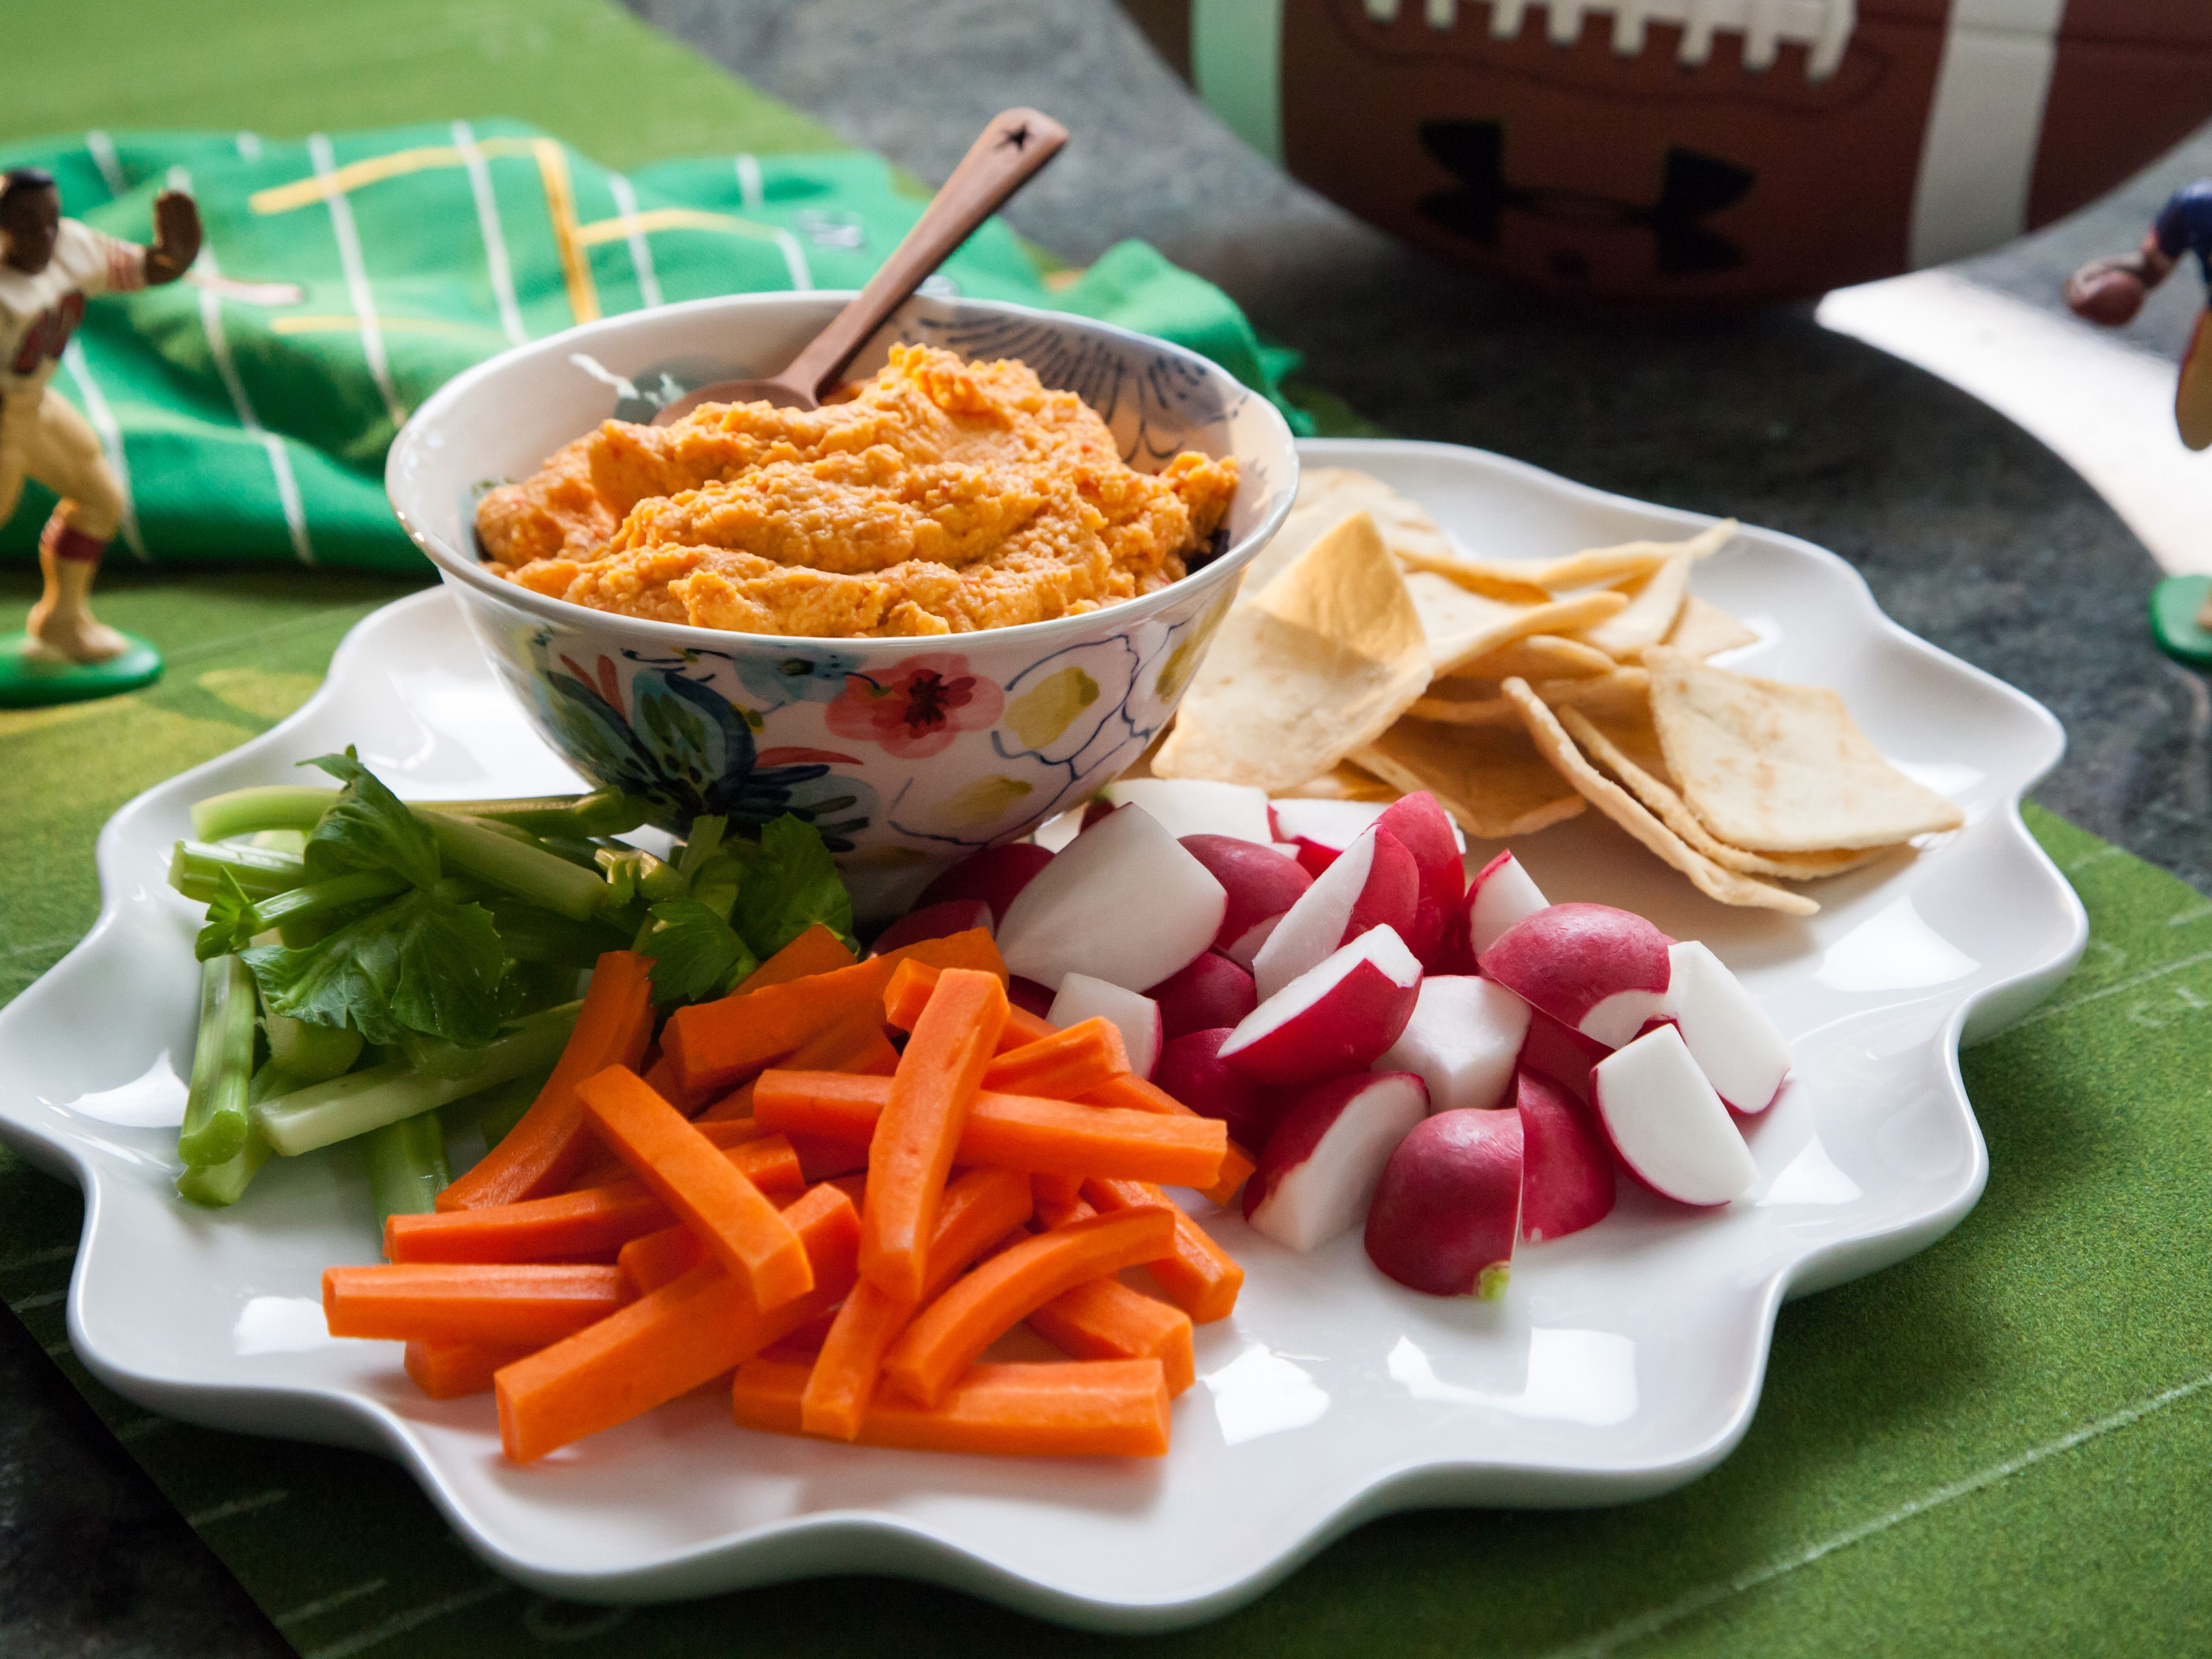 Roasted red pepper hummus recipe pinterest valerie bertinelli roasted red pepper hummus recipe pinterest valerie bertinelli red pepper hummus and roasted red peppers forumfinder Gallery